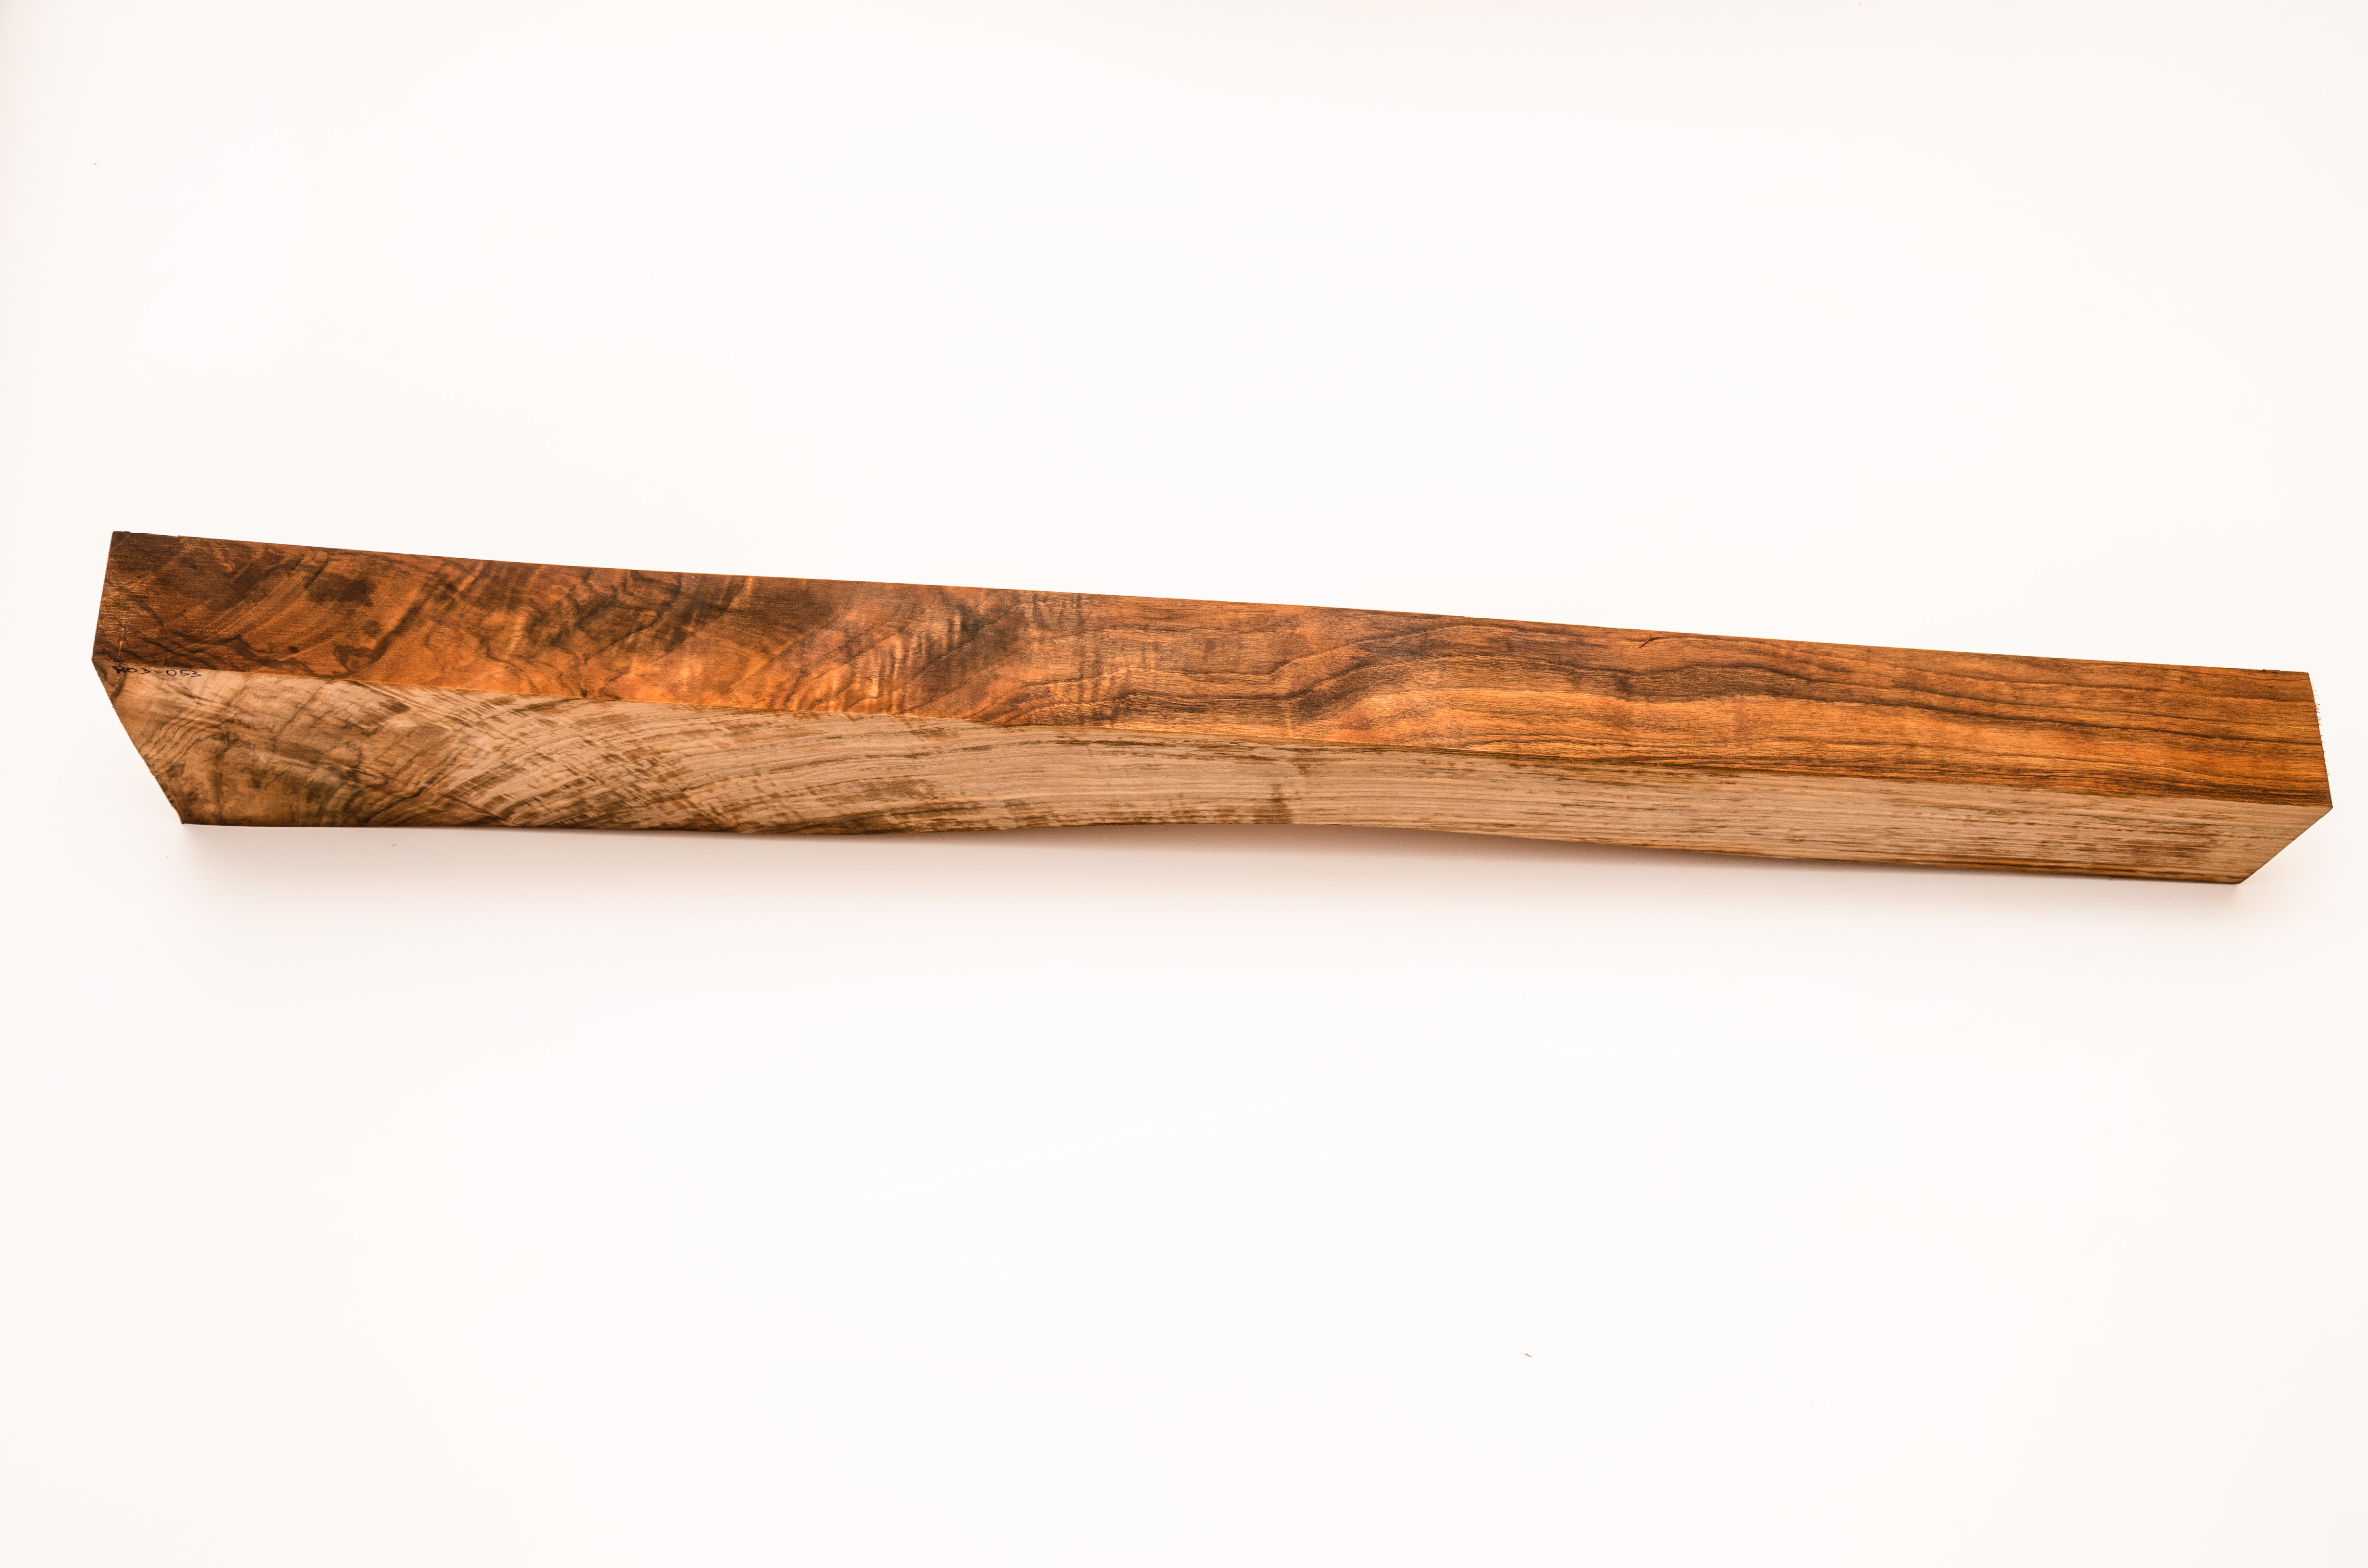 walnut_stock_blanks_for_guns_and_rifles-1444